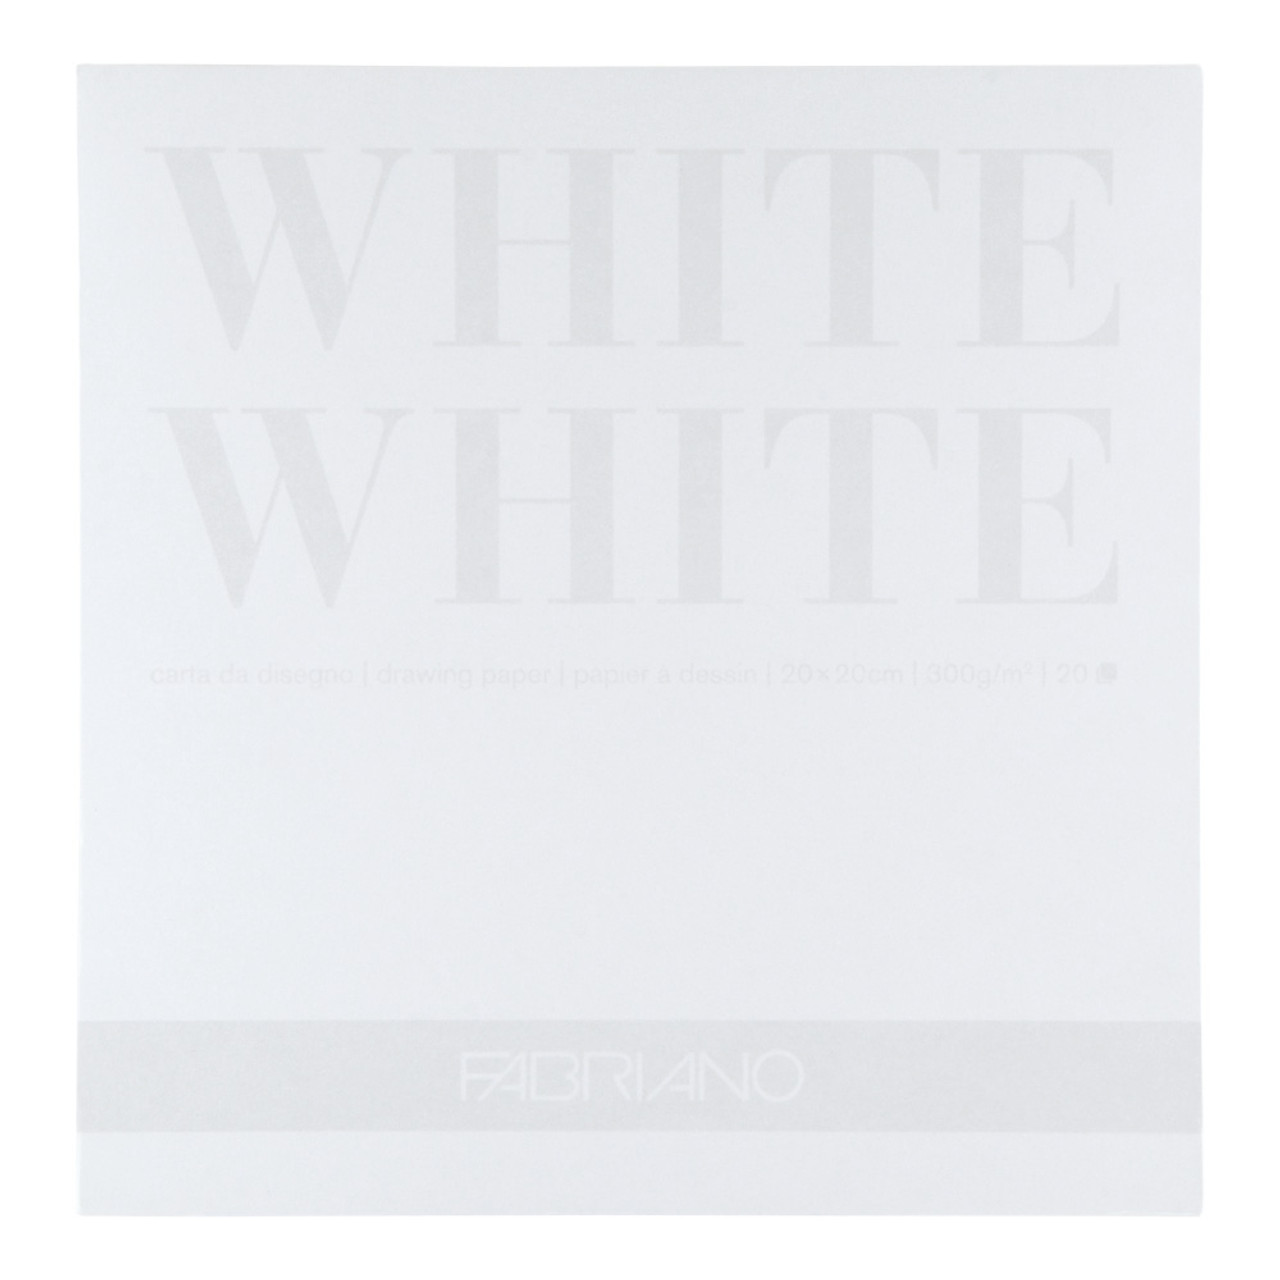 Fabriano White White Pad 9.5x12.5 300gsm 20 pages